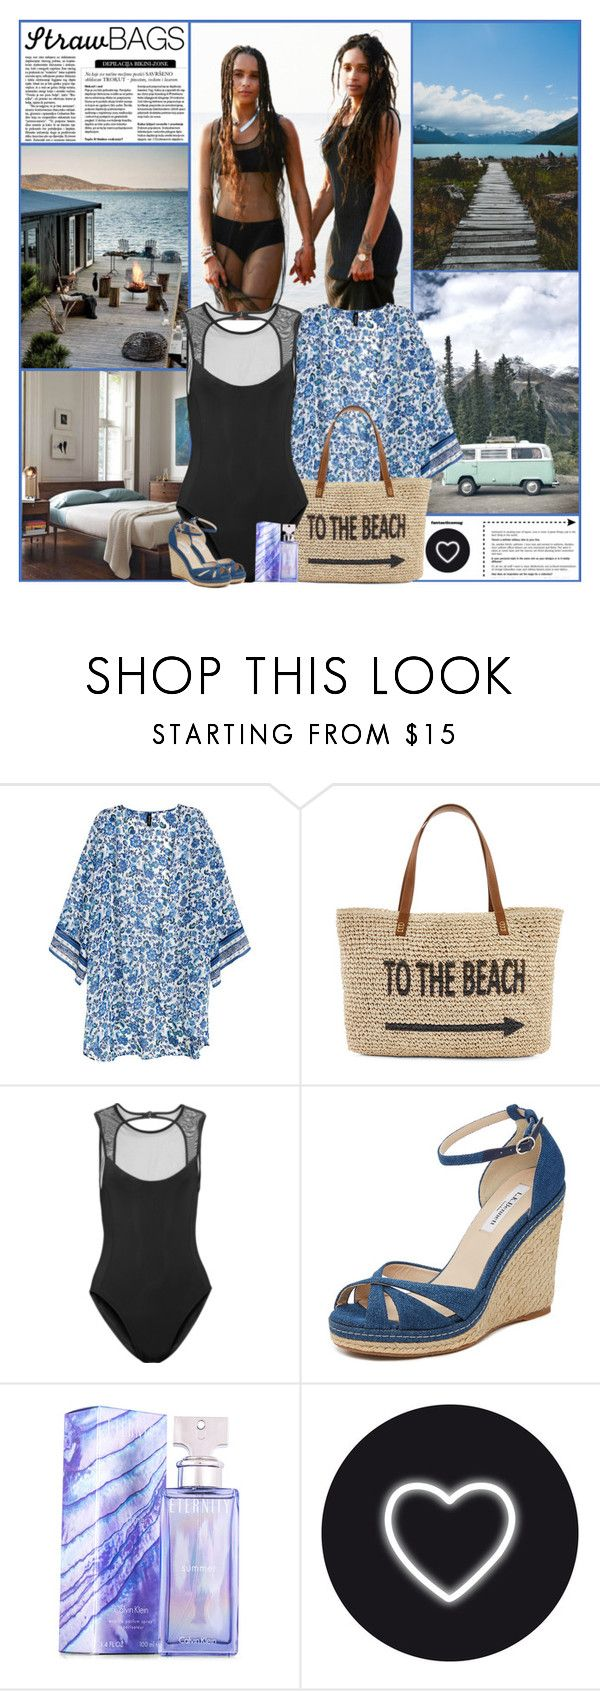 """Carry On: Straw Bags"" by kittyfantastica ❤ liked on Polyvore featuring H&M, Straw Studios, Beth Richards, L.K.Bennett, Calvin Klein, Seletti and bedroom"